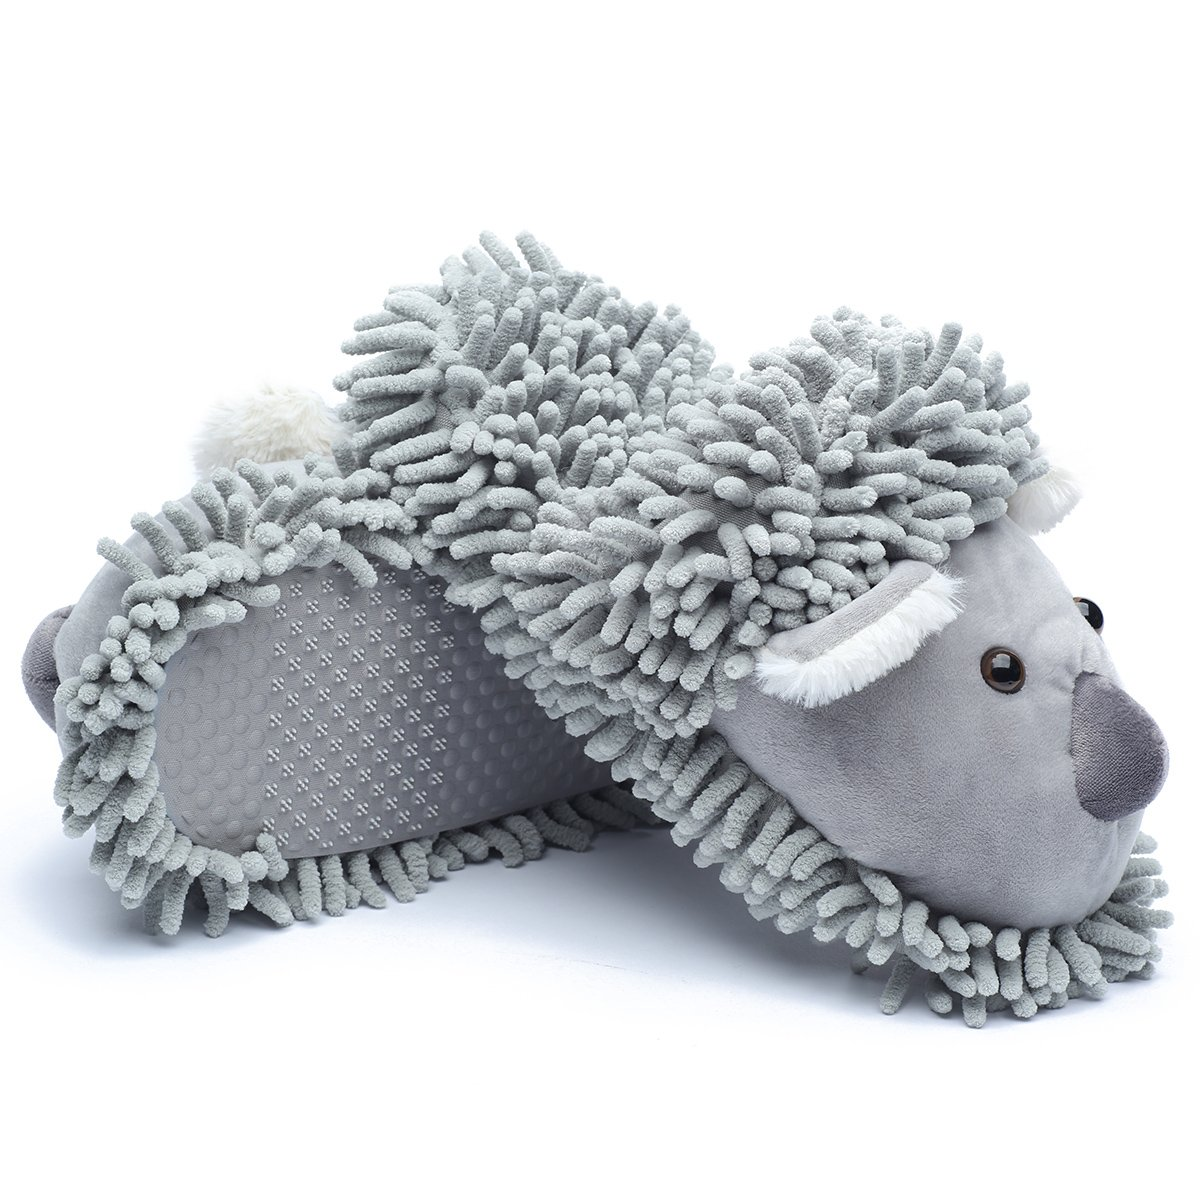 Ofoot Winter Warm Plush Anti-slip Indoor Animal Slippers for Women and Men (M/L 8-10 B(M) US, Grey(Koala)) by Ofoot (Image #8)